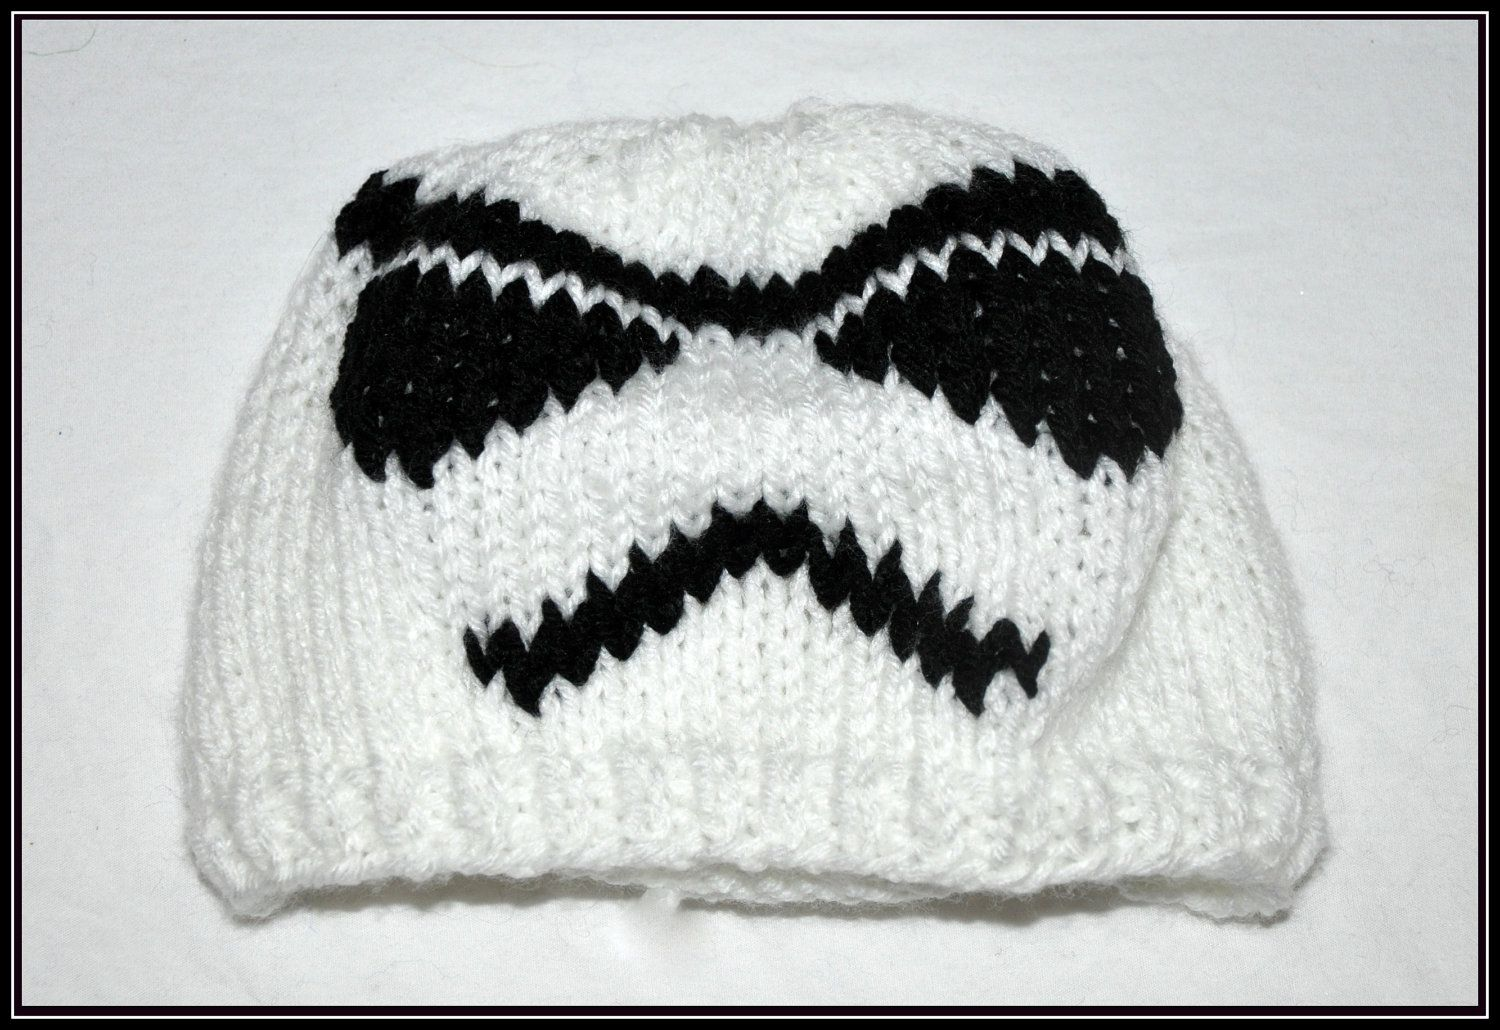 Star Wars Knit Hat | Home Hats Knit Star Wars Stormtrooper Hat ...